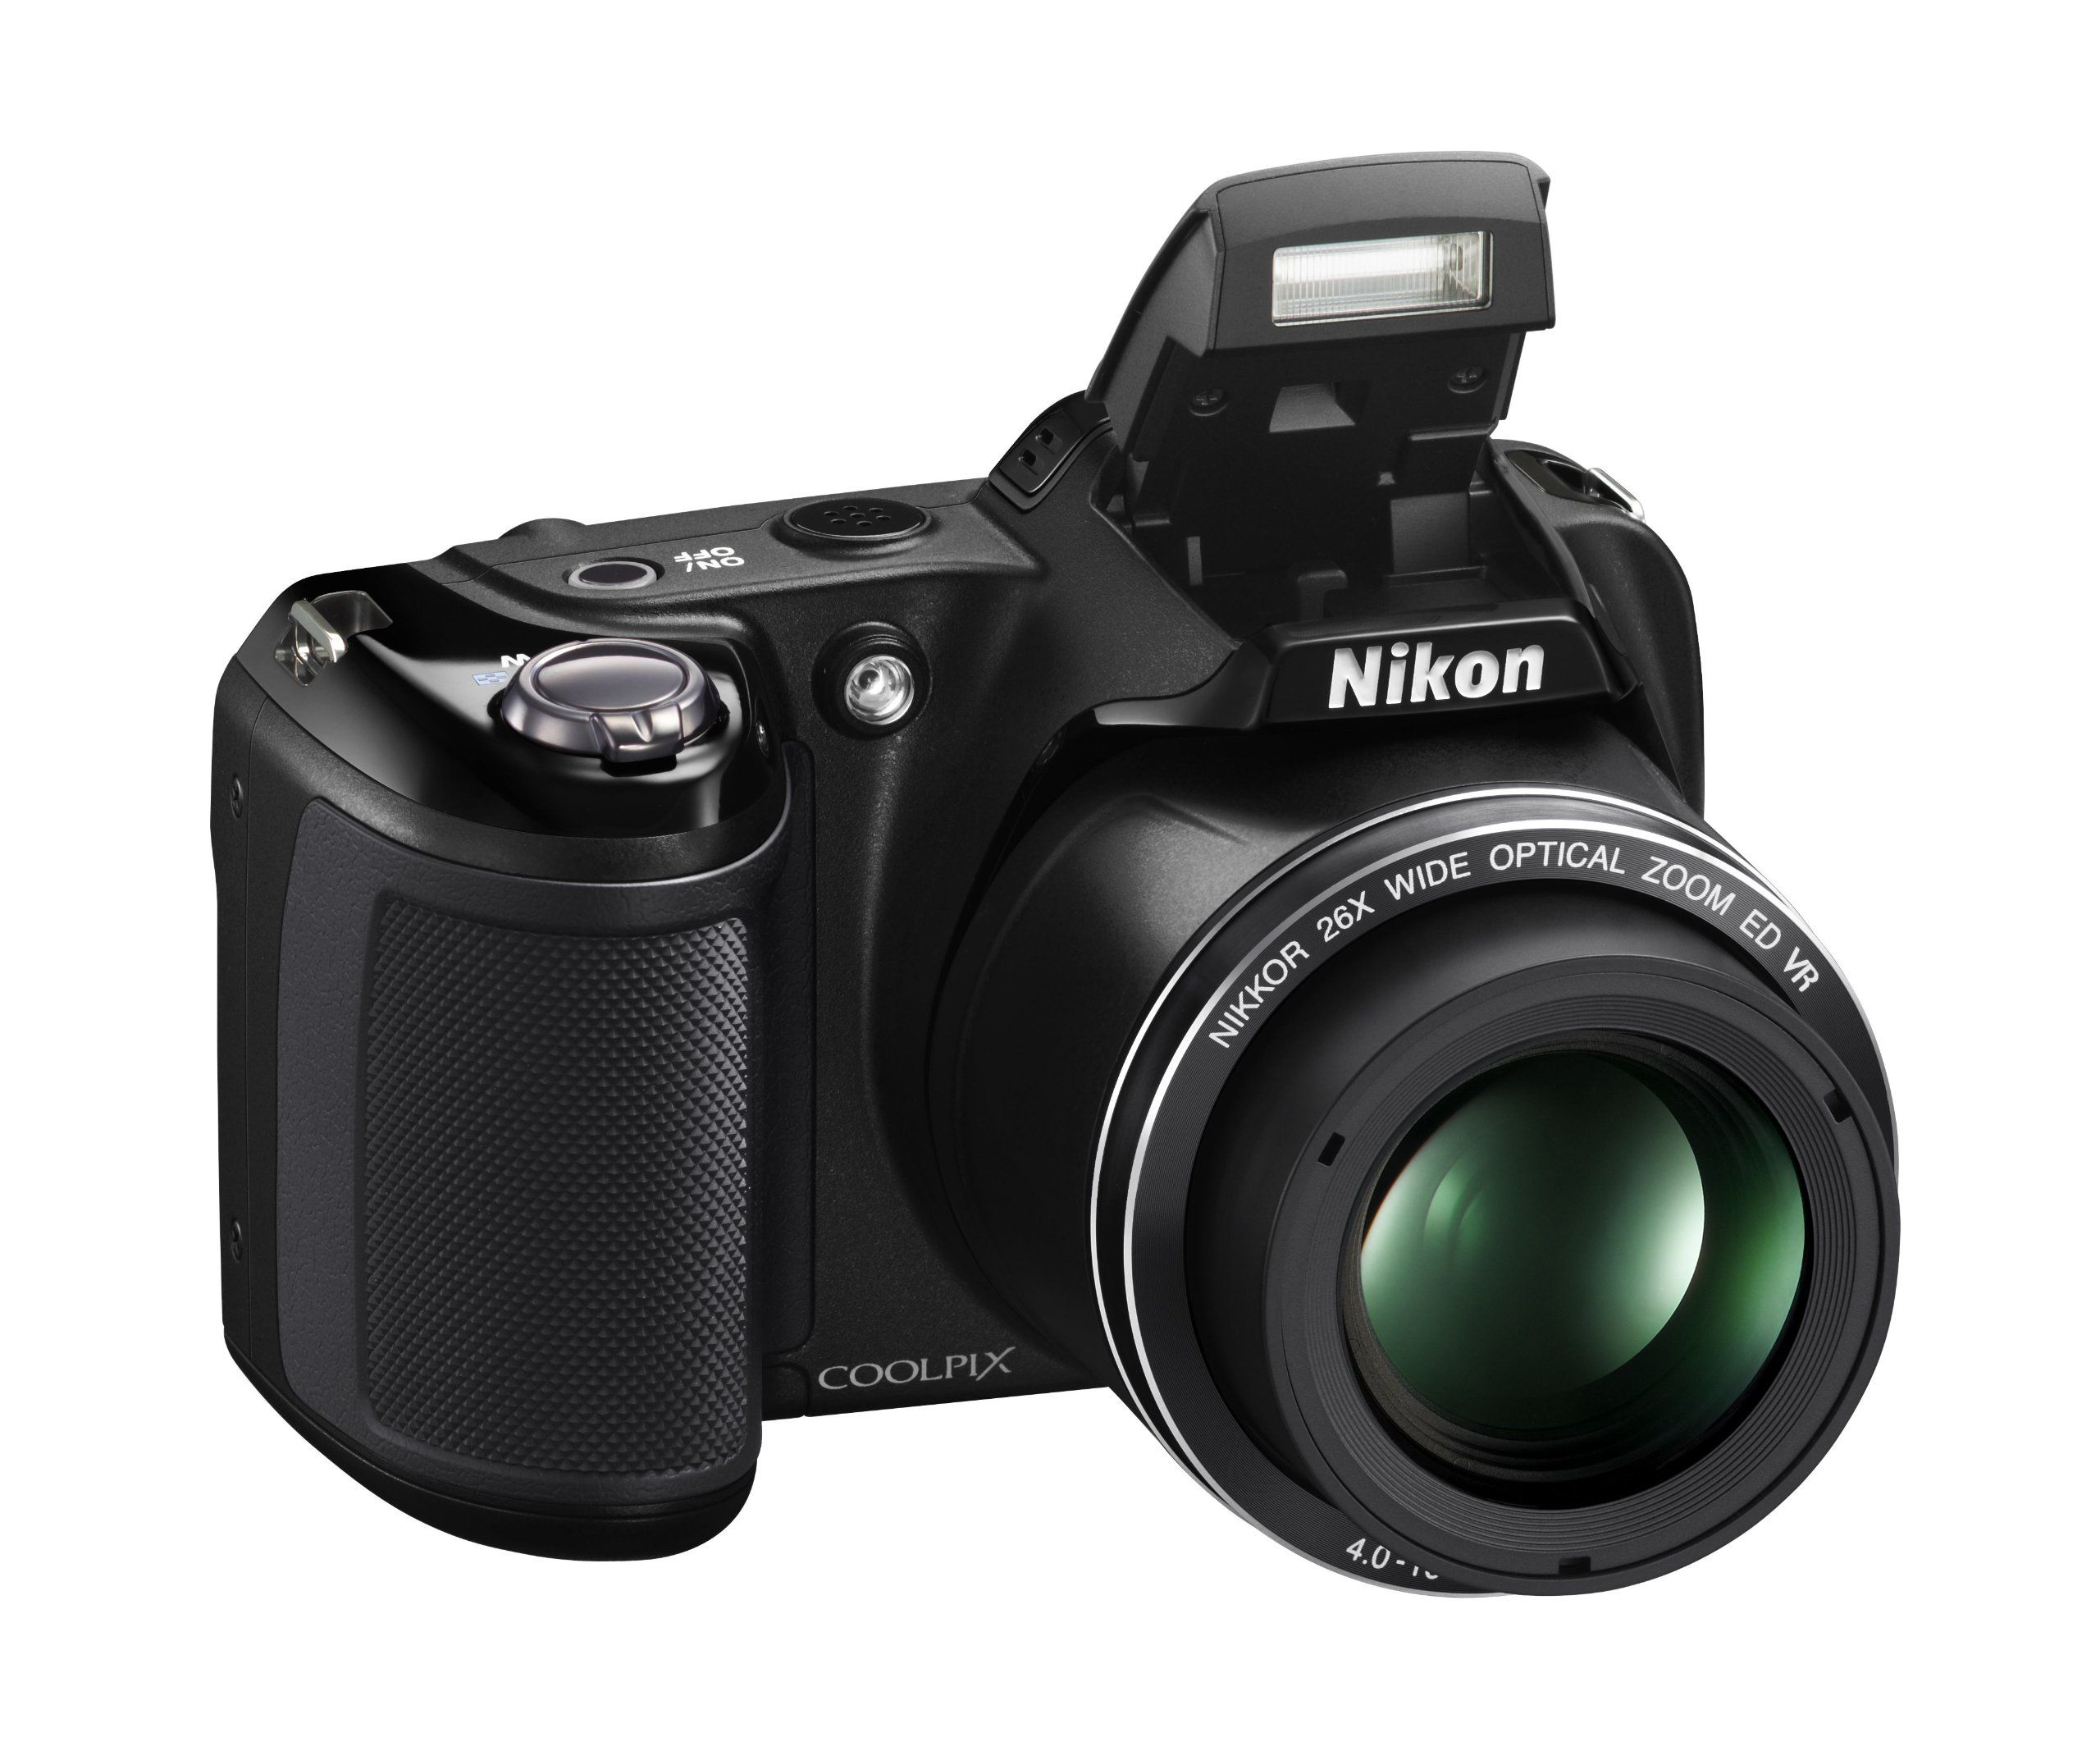 Amazon.com : Nikon Coolpix L330 Digital Camera (Black) : Camera ...